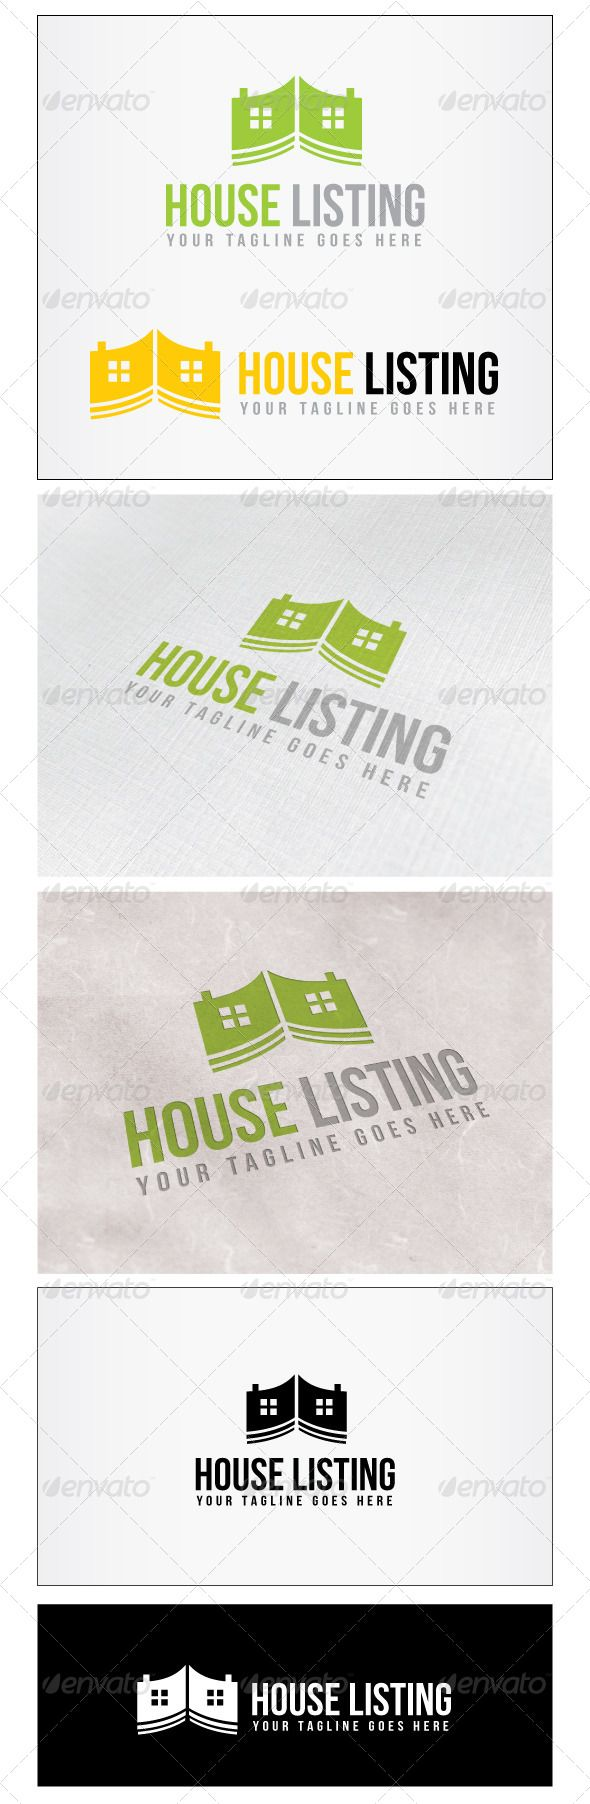 17 best images about logo templates logos fonts house listing logo